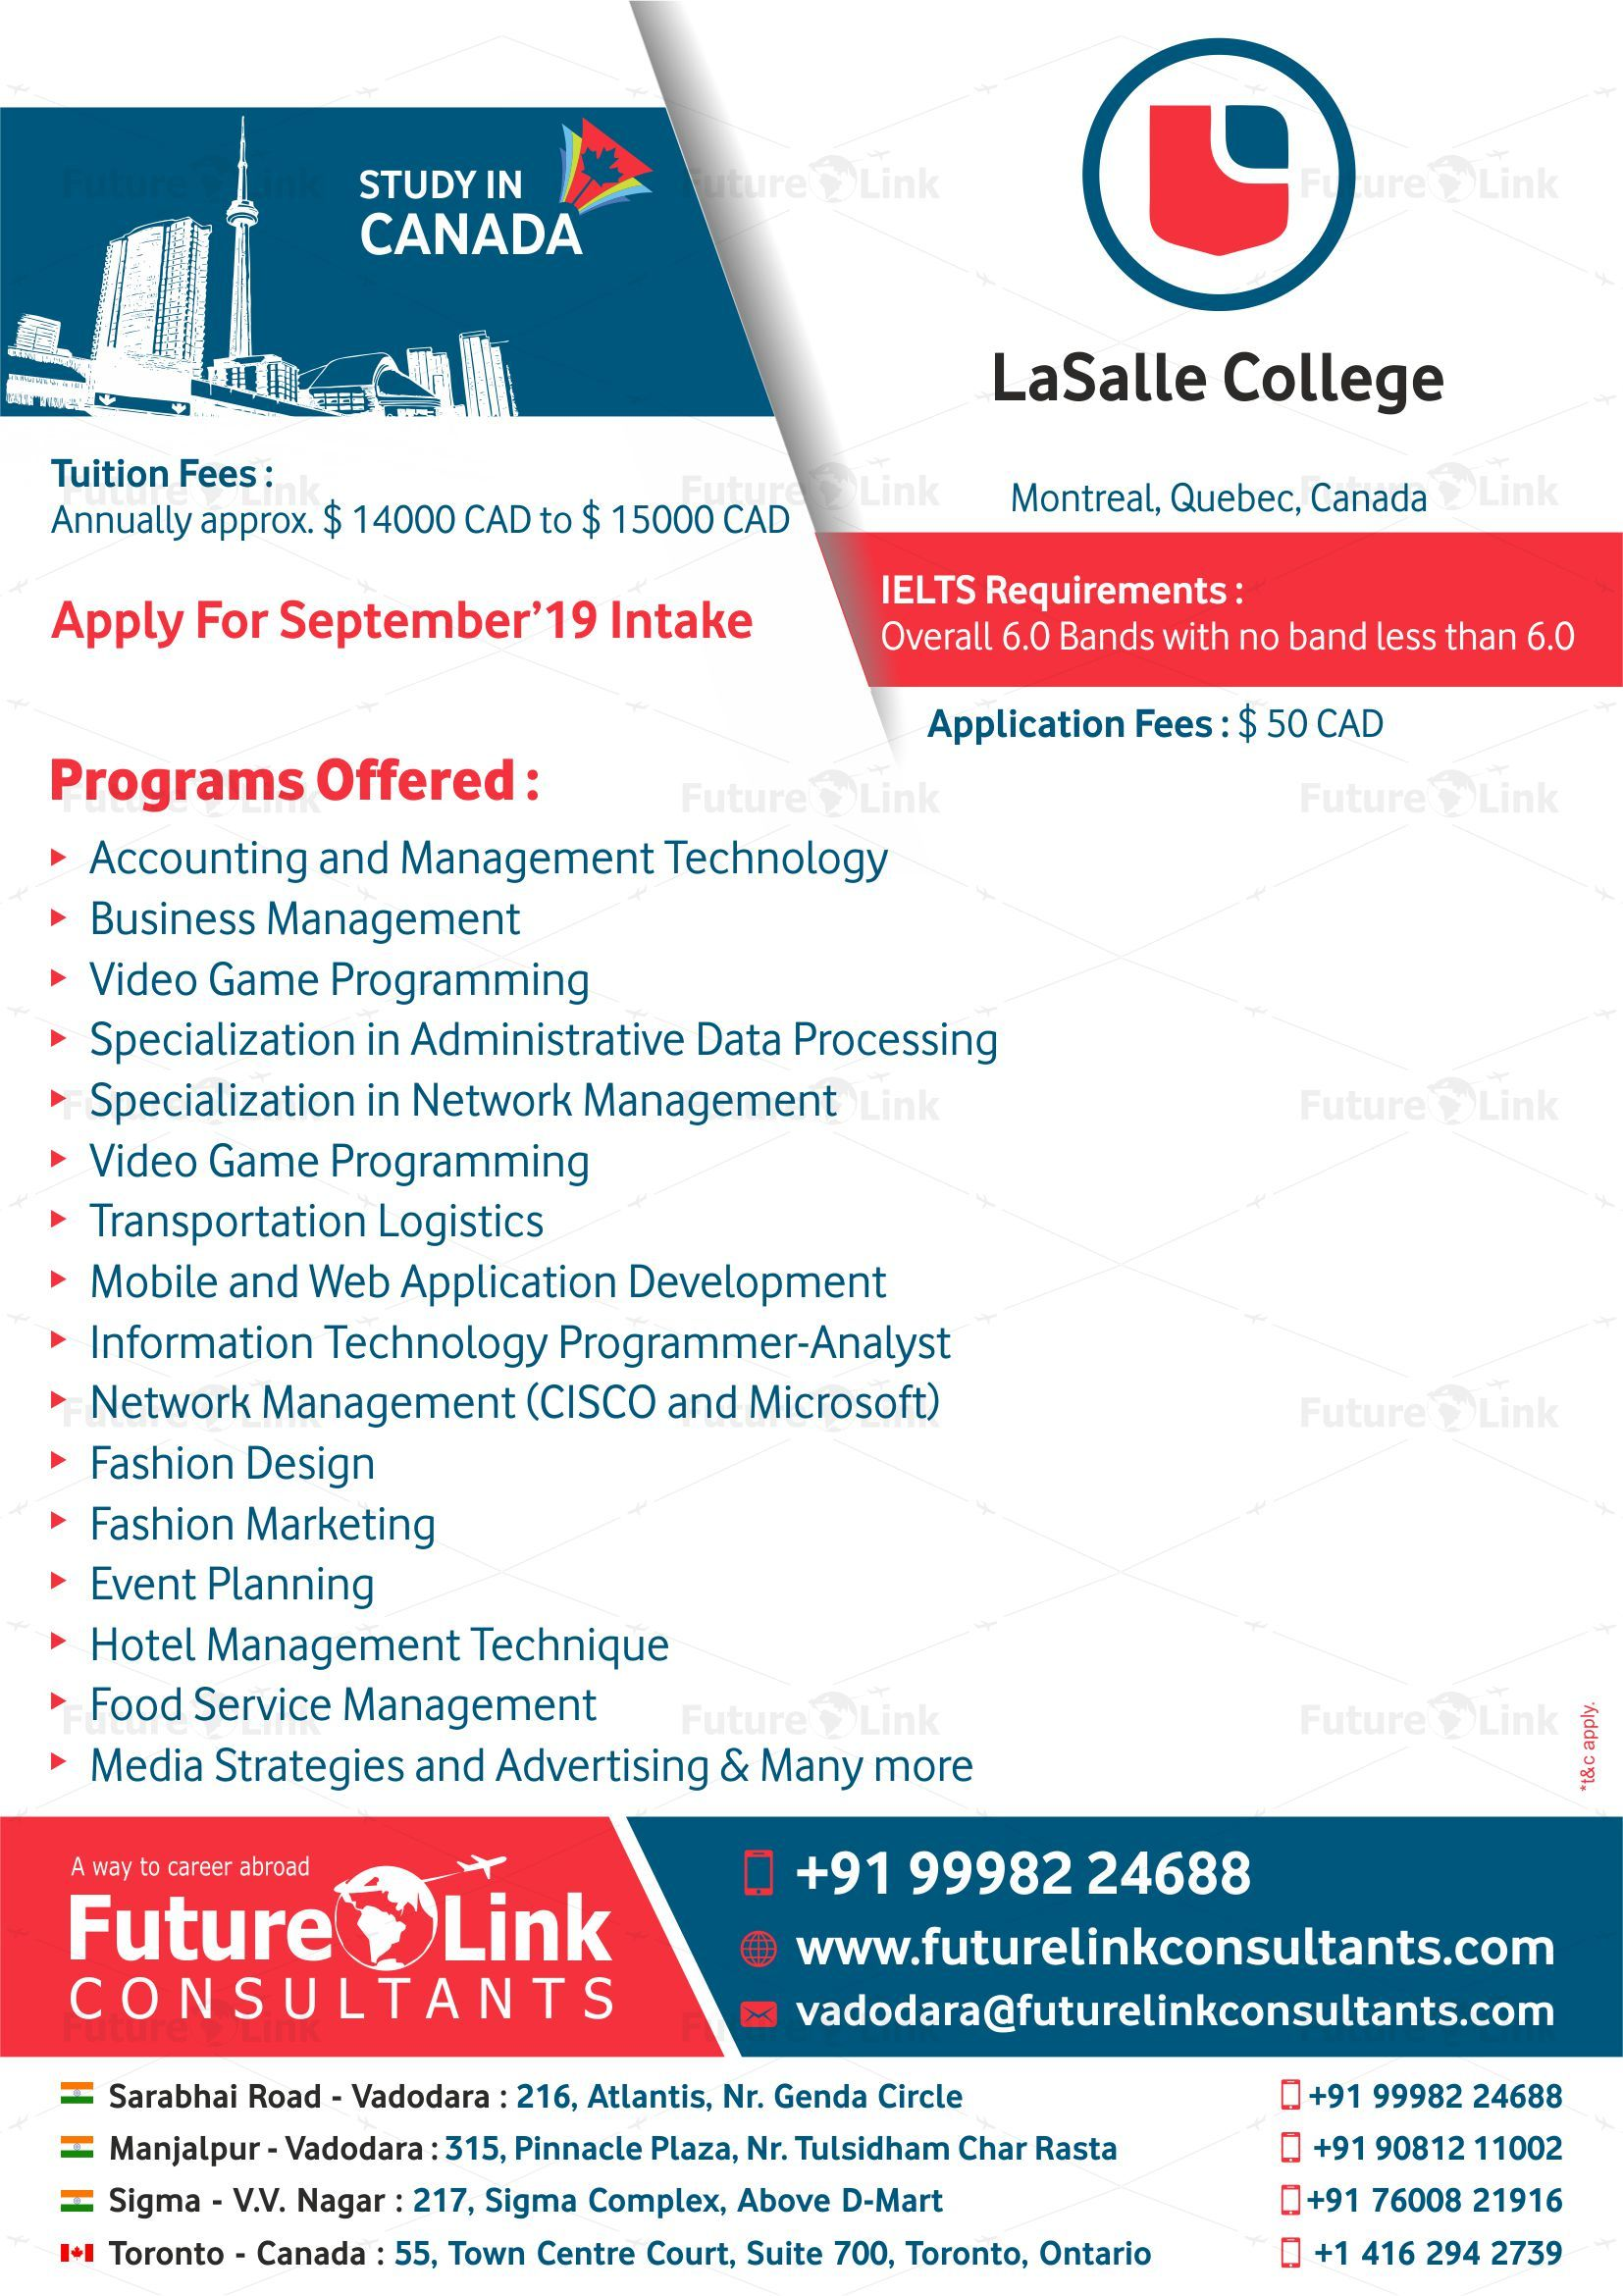 Lasalle College Montreal Canada Has Opened Up Some Of Its Best Programs For September 19 Intake So Don T Wait An Lasalle College Tuition Business Management